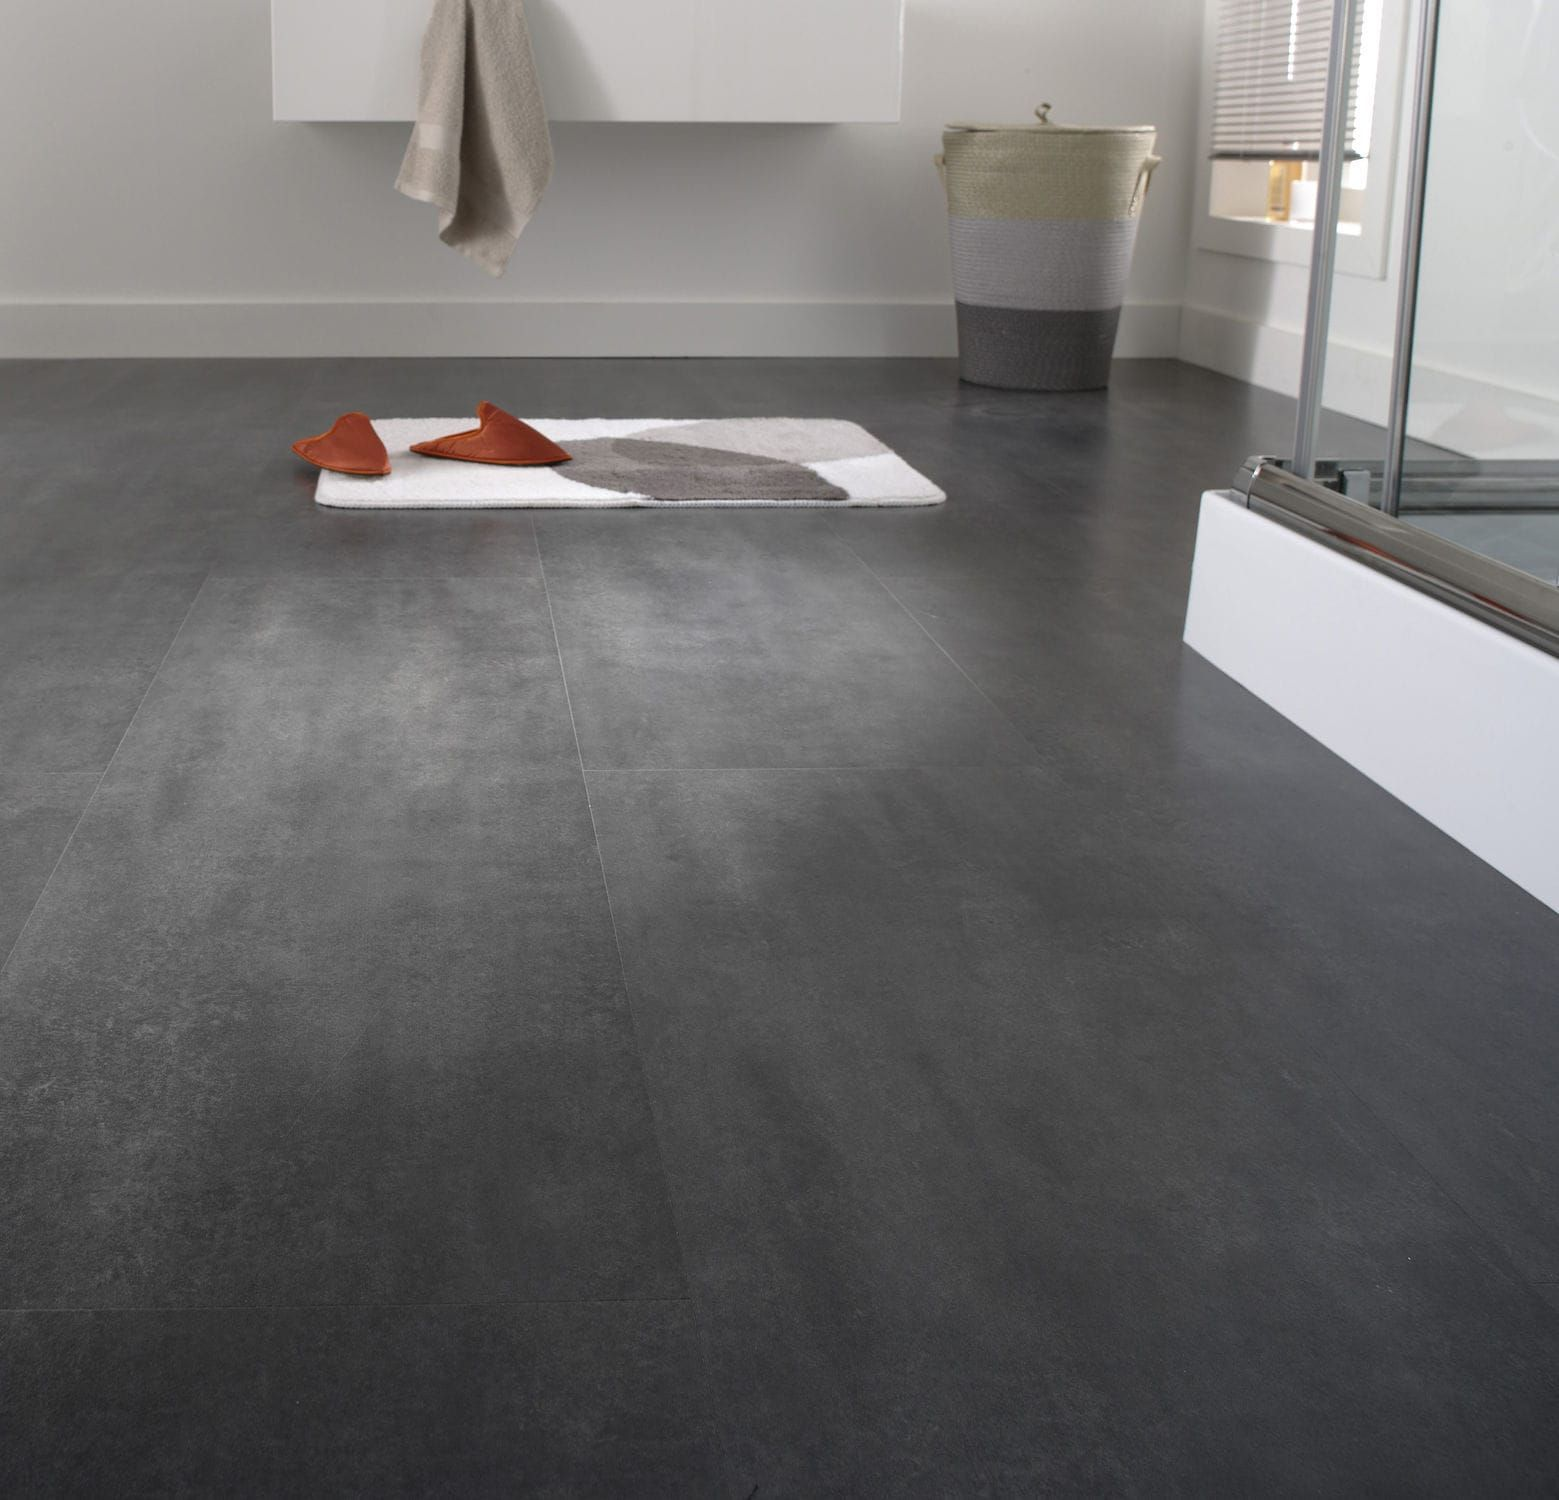 Hdf laminate flooring stone look tile look floating oxido hdf laminate flooring stone look tile look floating oxido negro 120x60 faus dailygadgetfo Images